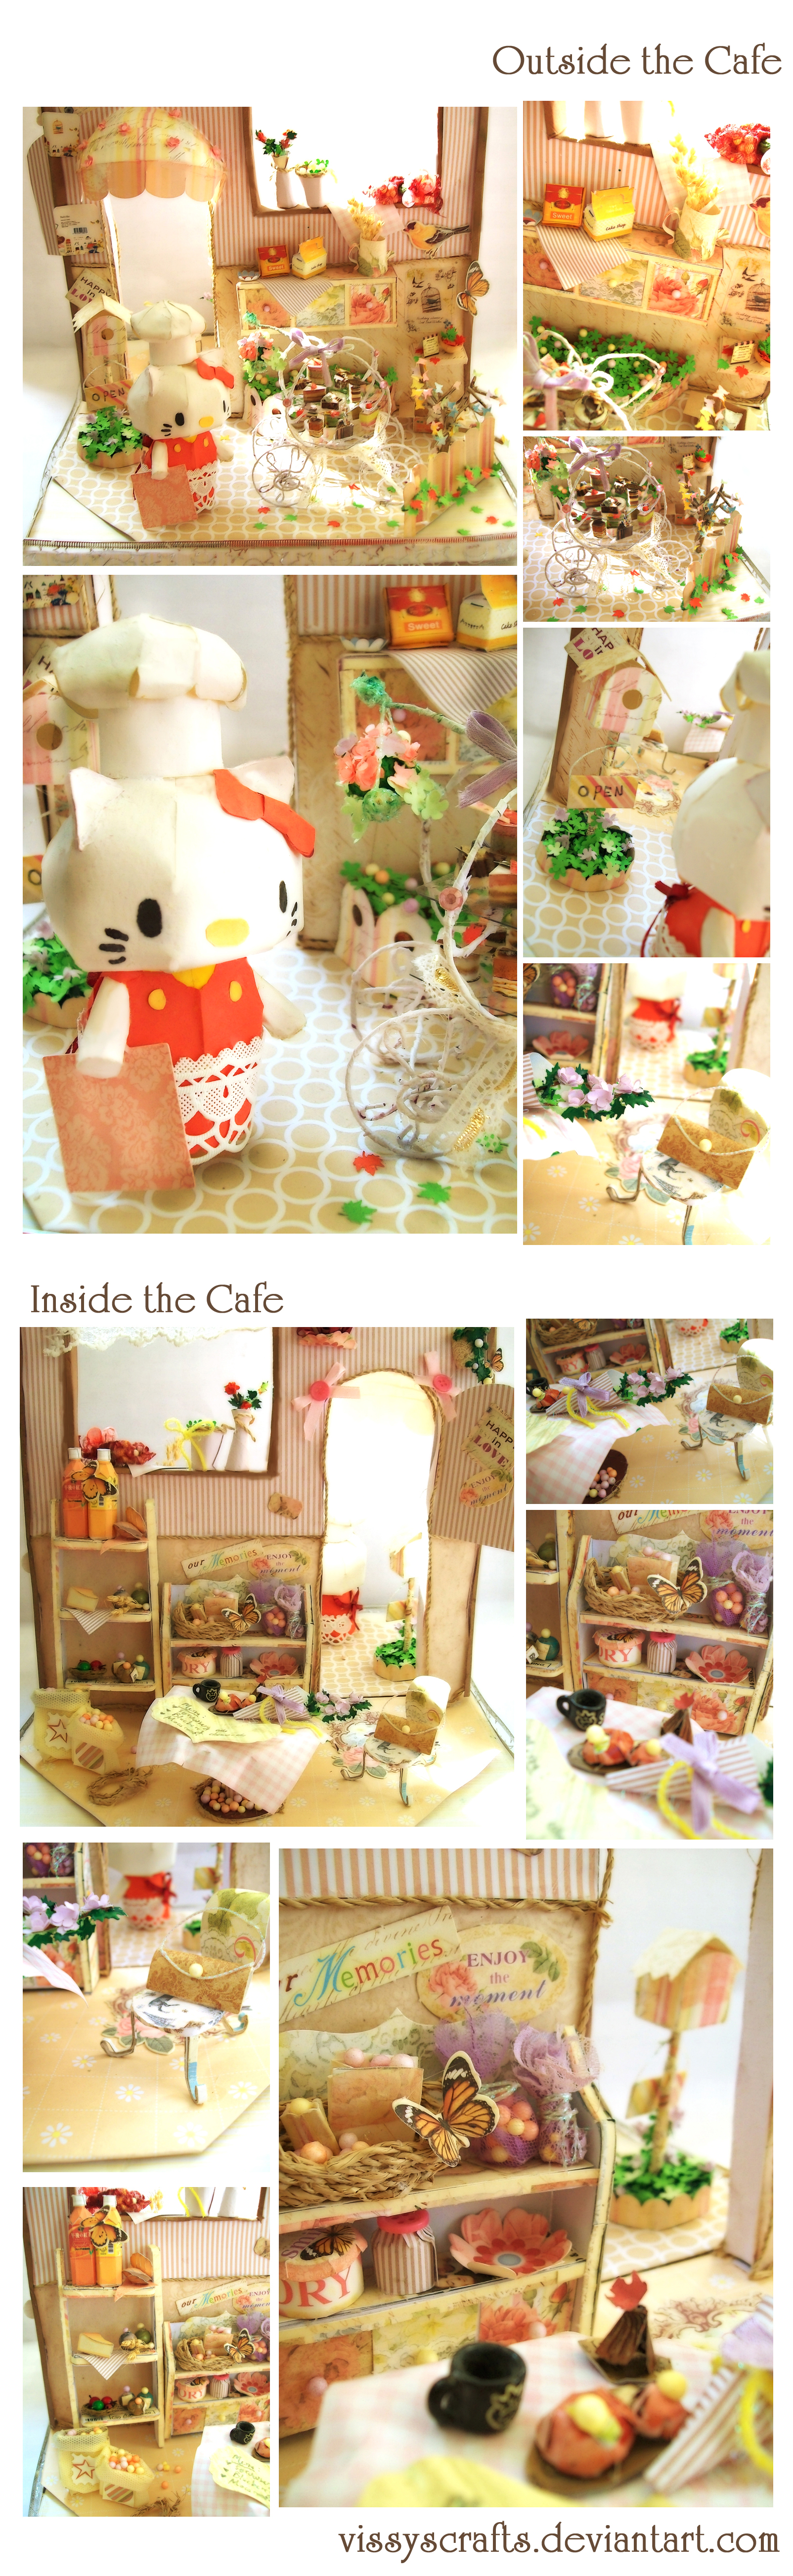 Adorable Cafe (Complete) by Vissyscrafts